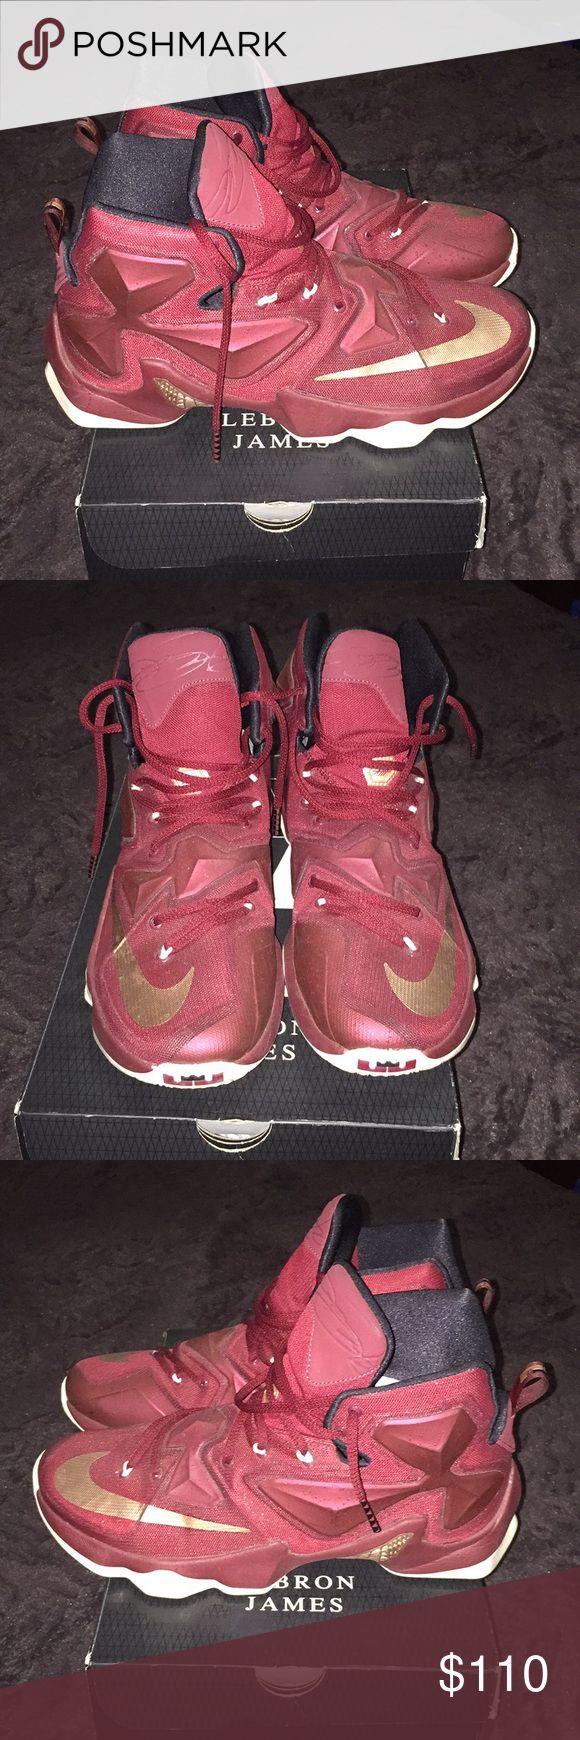 """Nike LEBRON 13s """"Maroon"""" Nike LEBRON 13s """"Maroon"""" Size:11 Shoes will be thoroughly cleaned with (Crep or Jason Markk). Nike Shoes Sneakers"""